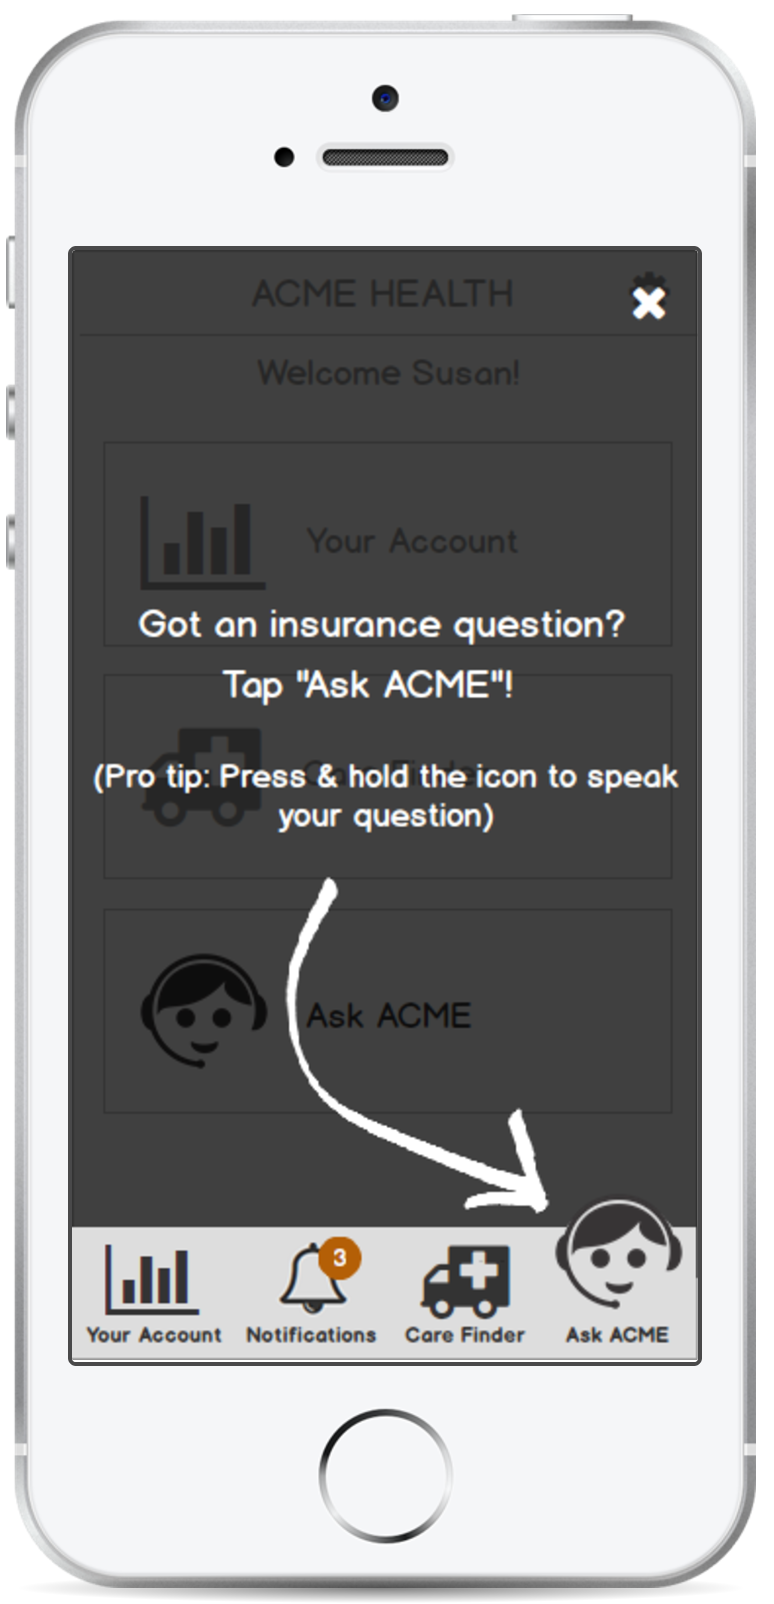 ACME Health: Onboarding screen